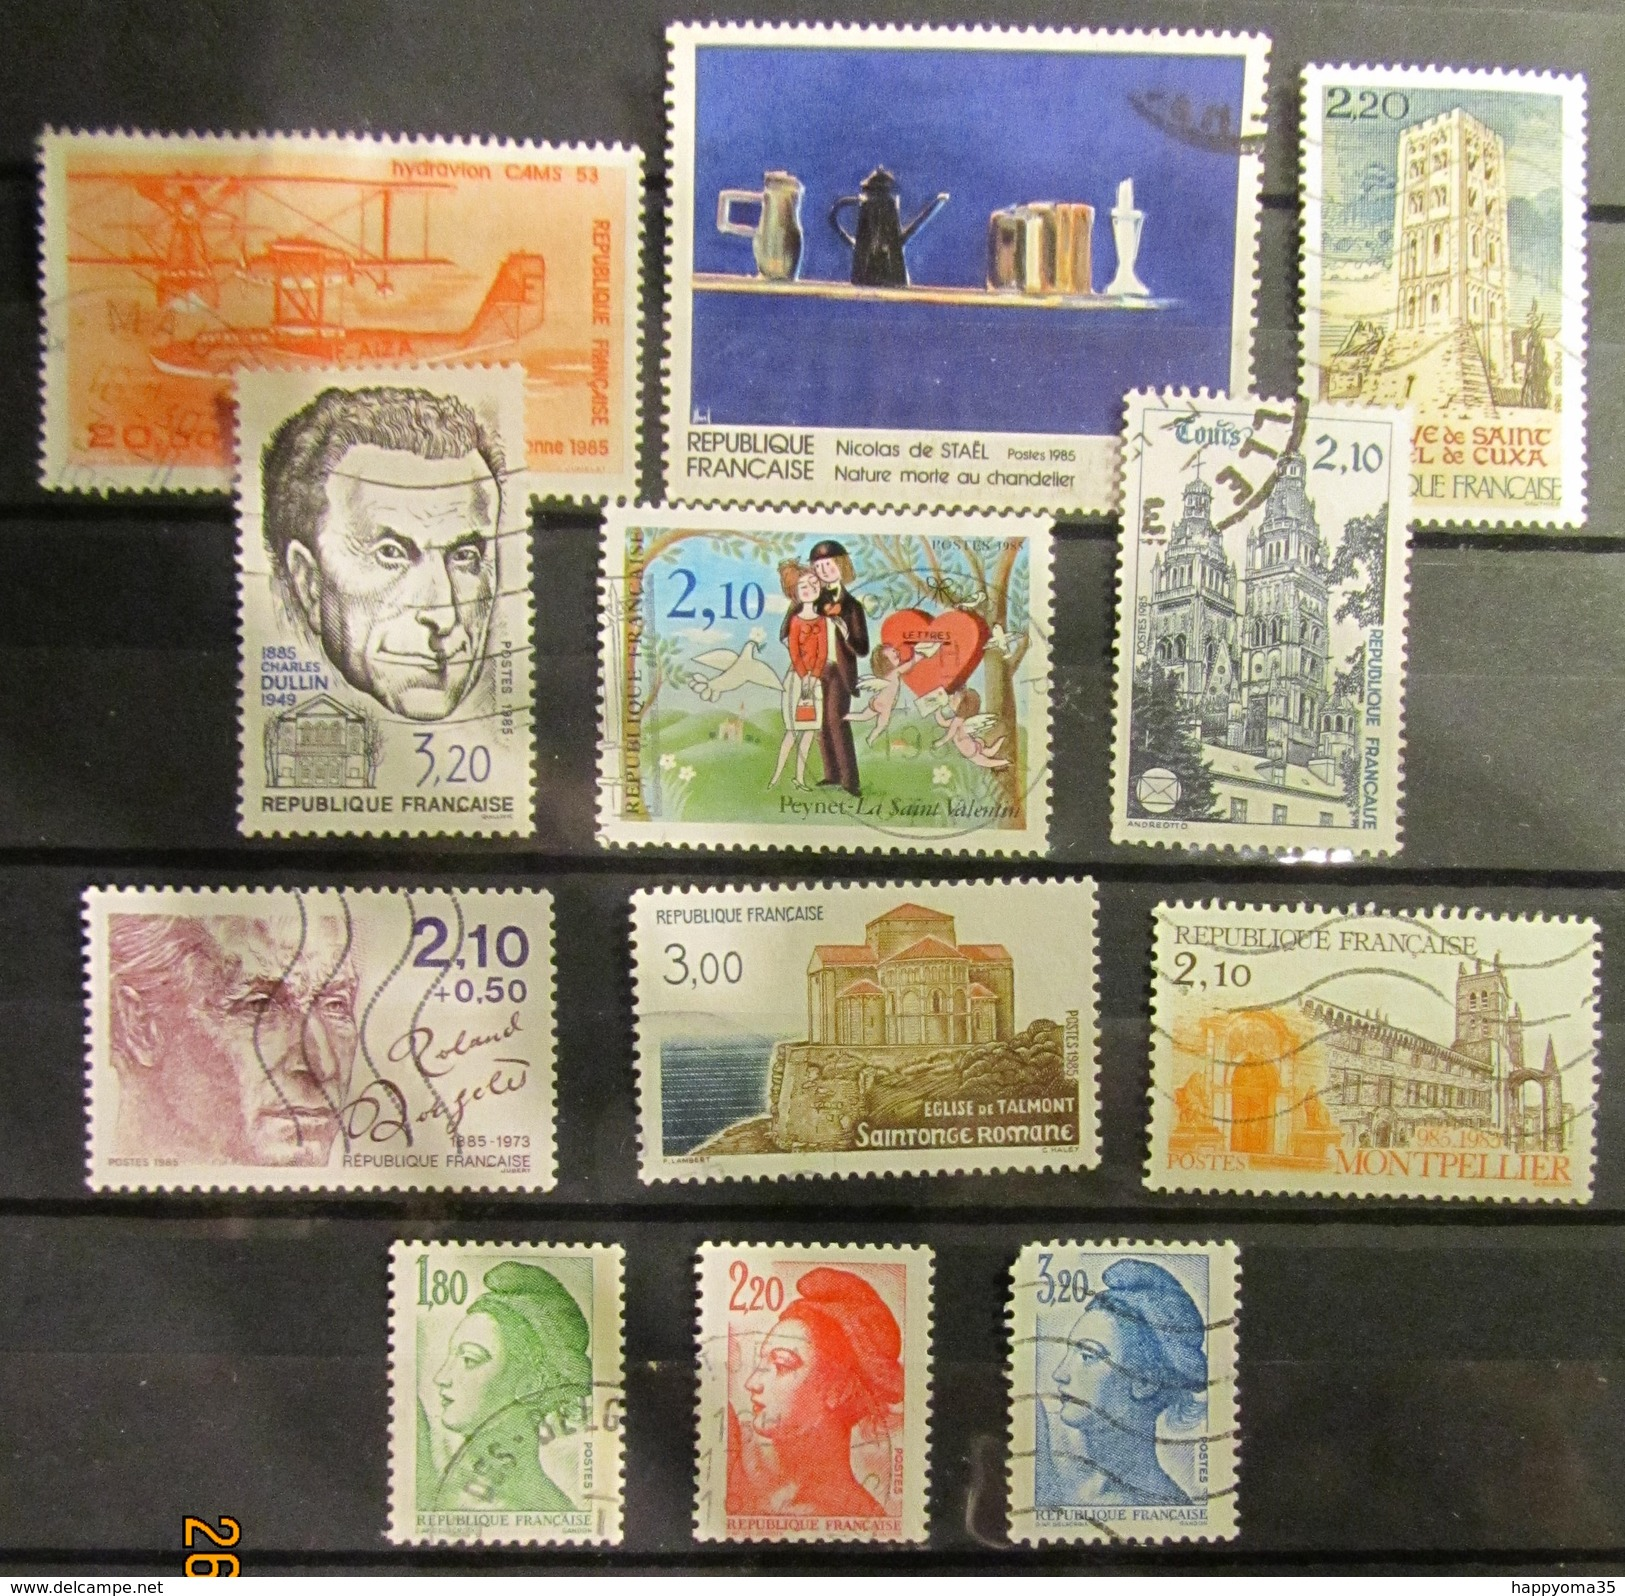 Frankreich Mix Set Stamps Of 1995 France Francia Frankrijk Small Selection Of Fine Used 902 - Frankreich